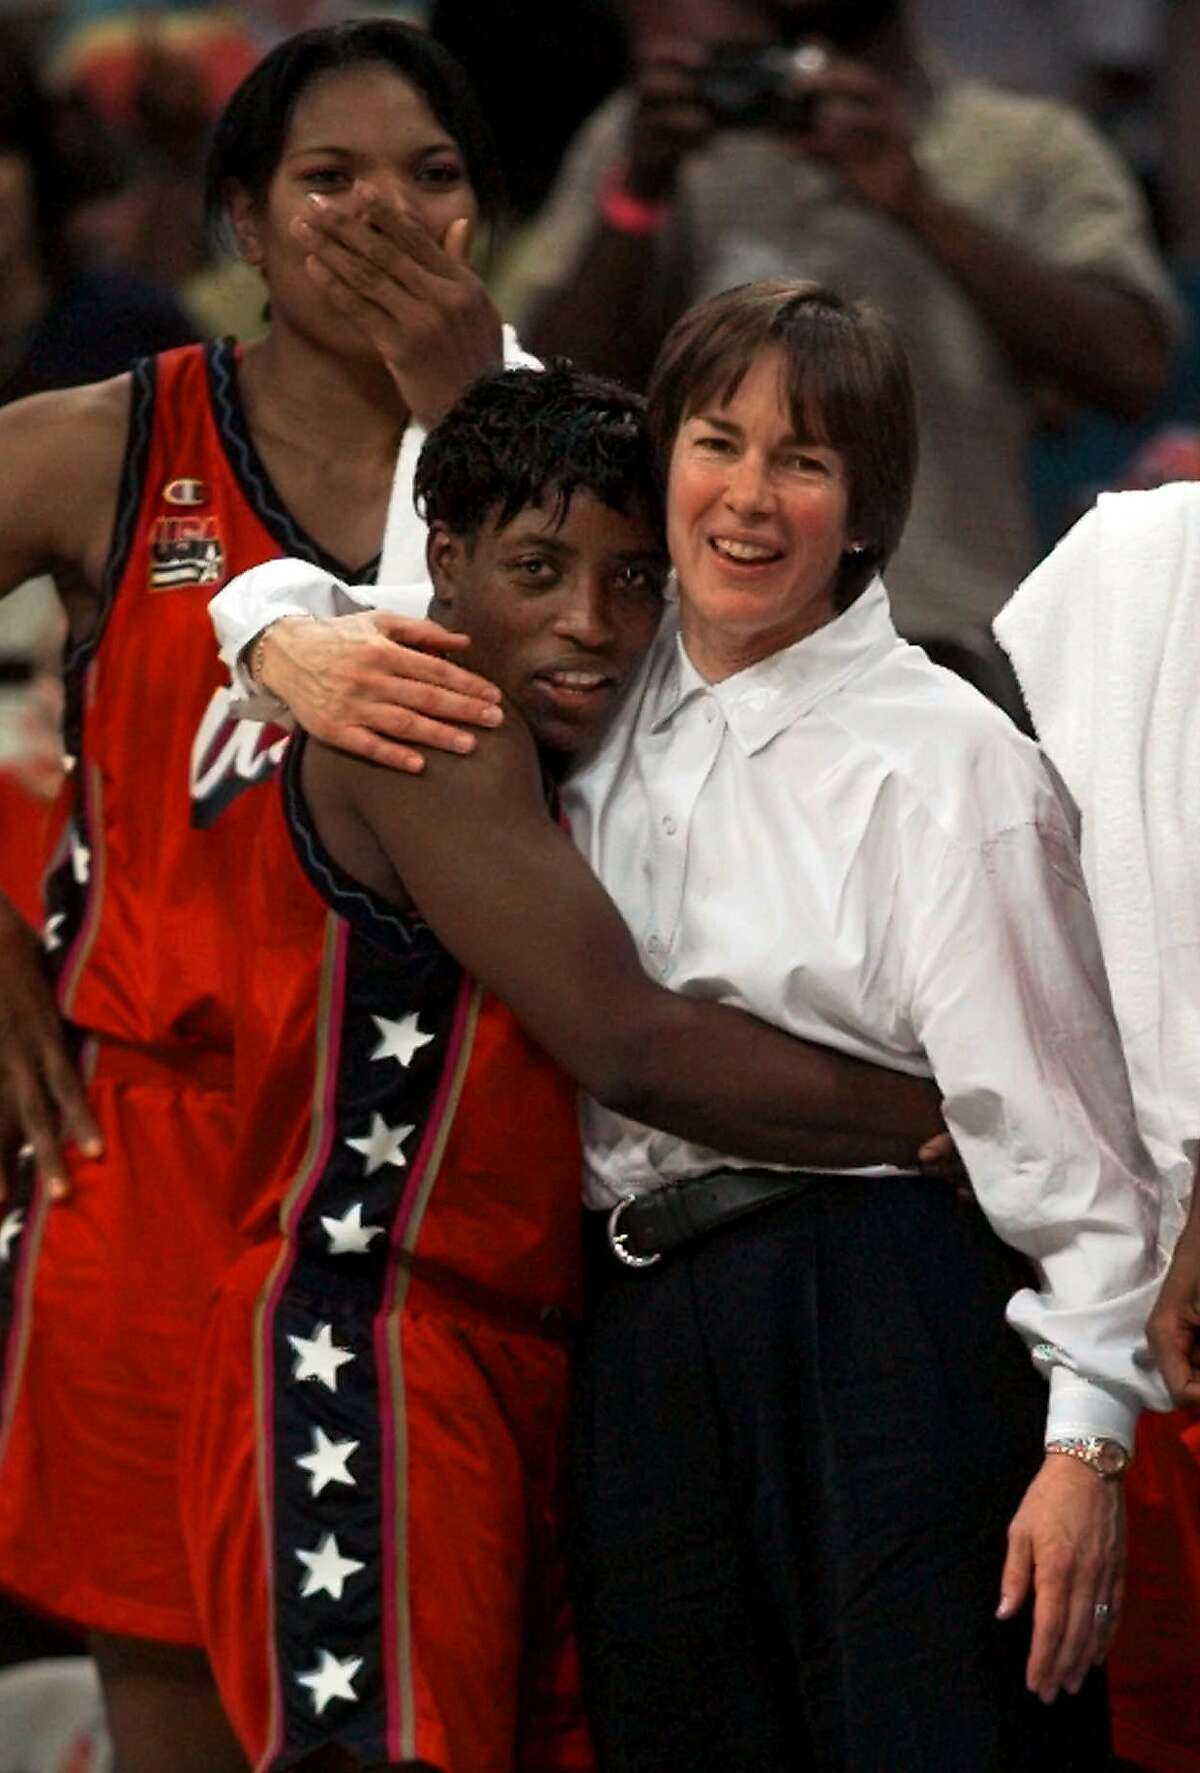 FILE - In this Aug. 4, 1996, file photo, USA women's head coach Tara VanDerveer, right, hugs Ruthie Bolton, as Venus Lacey watches the action on the court during the final moments of the Gold medal women's basketball game against Brazil at the Centennial Summer Olympic Games in Atlanta. There was much more at risk for the 1996 Olympic women's basketball team than just winning the gold medal when they took the floor against Brazil in Atlanta. (AP Photo/Eric Draper, File)